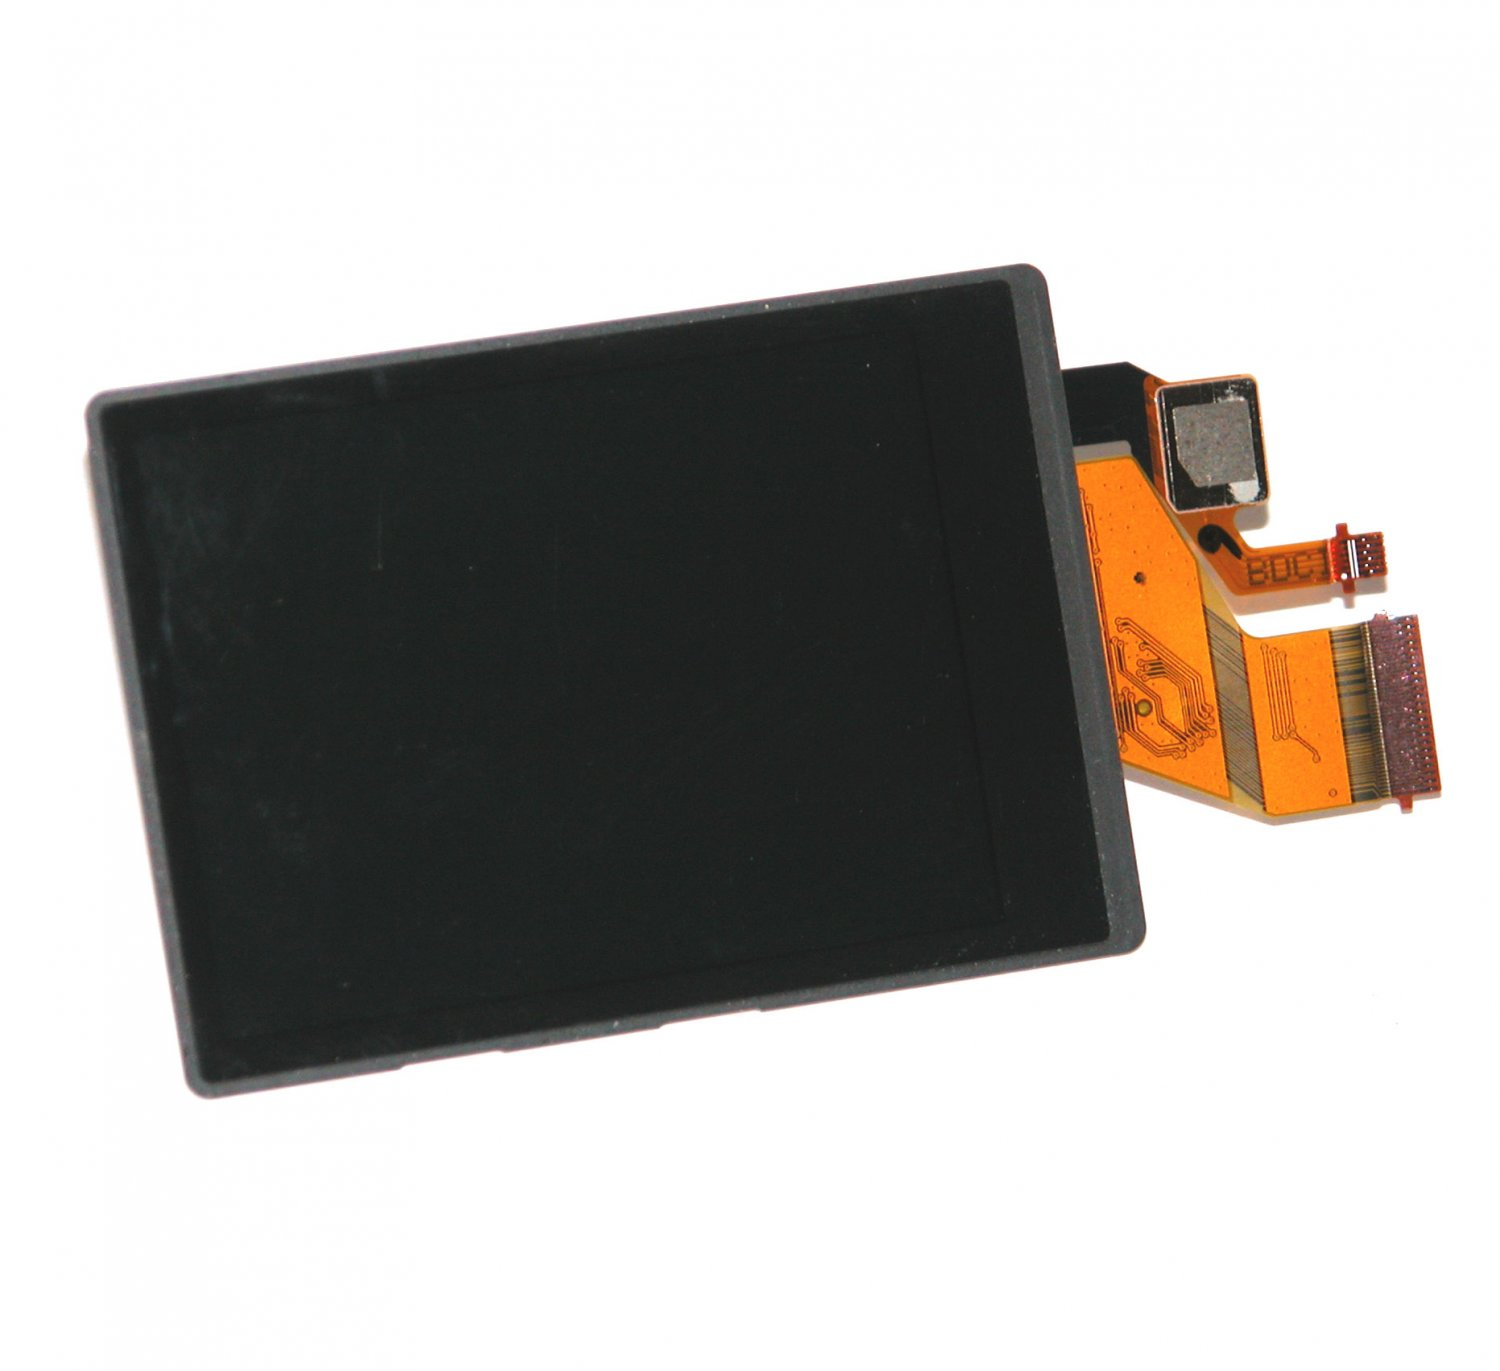 Samsung WB350F Camera LCD Display Screen with Touch - Repair Parts